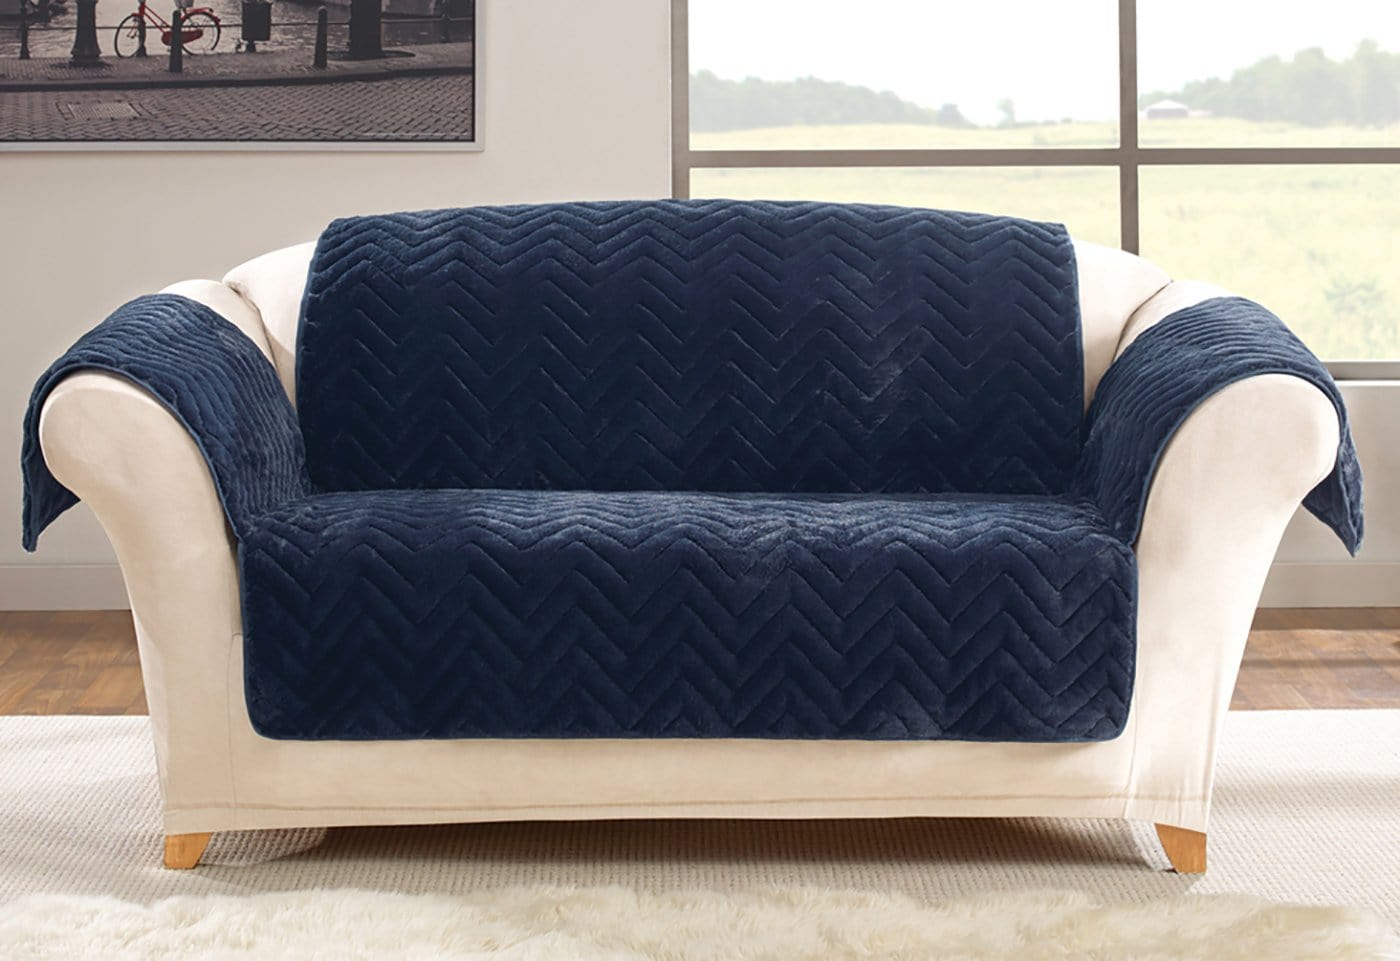 Faux Fur Chevron Loveseat Furniture Cover 100% Polyester Pet Furniture Cover Machine Washable - Loveseat / Navy